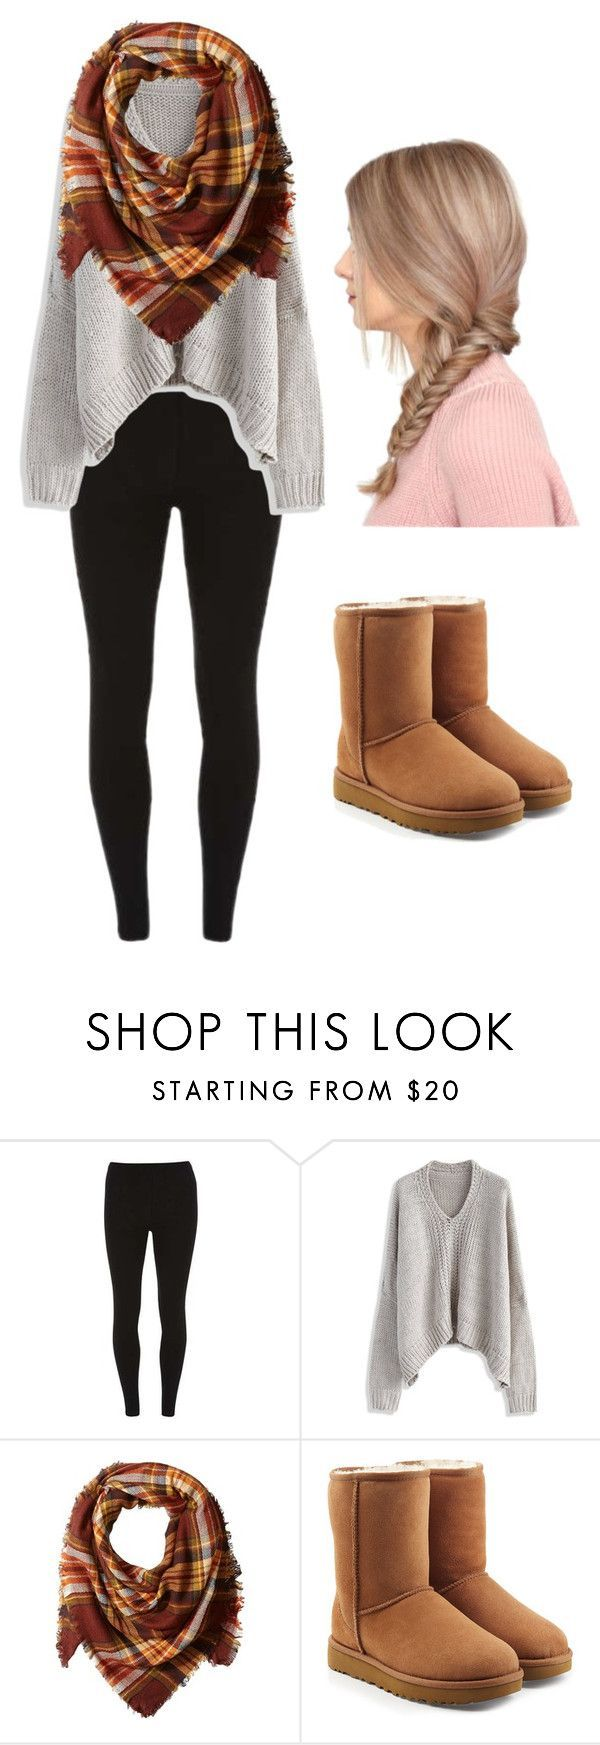 Winter Outfit by verrethannah on Polyvore featuring Dorothy Perkins, Chicwish, La Fiorentina and UGG